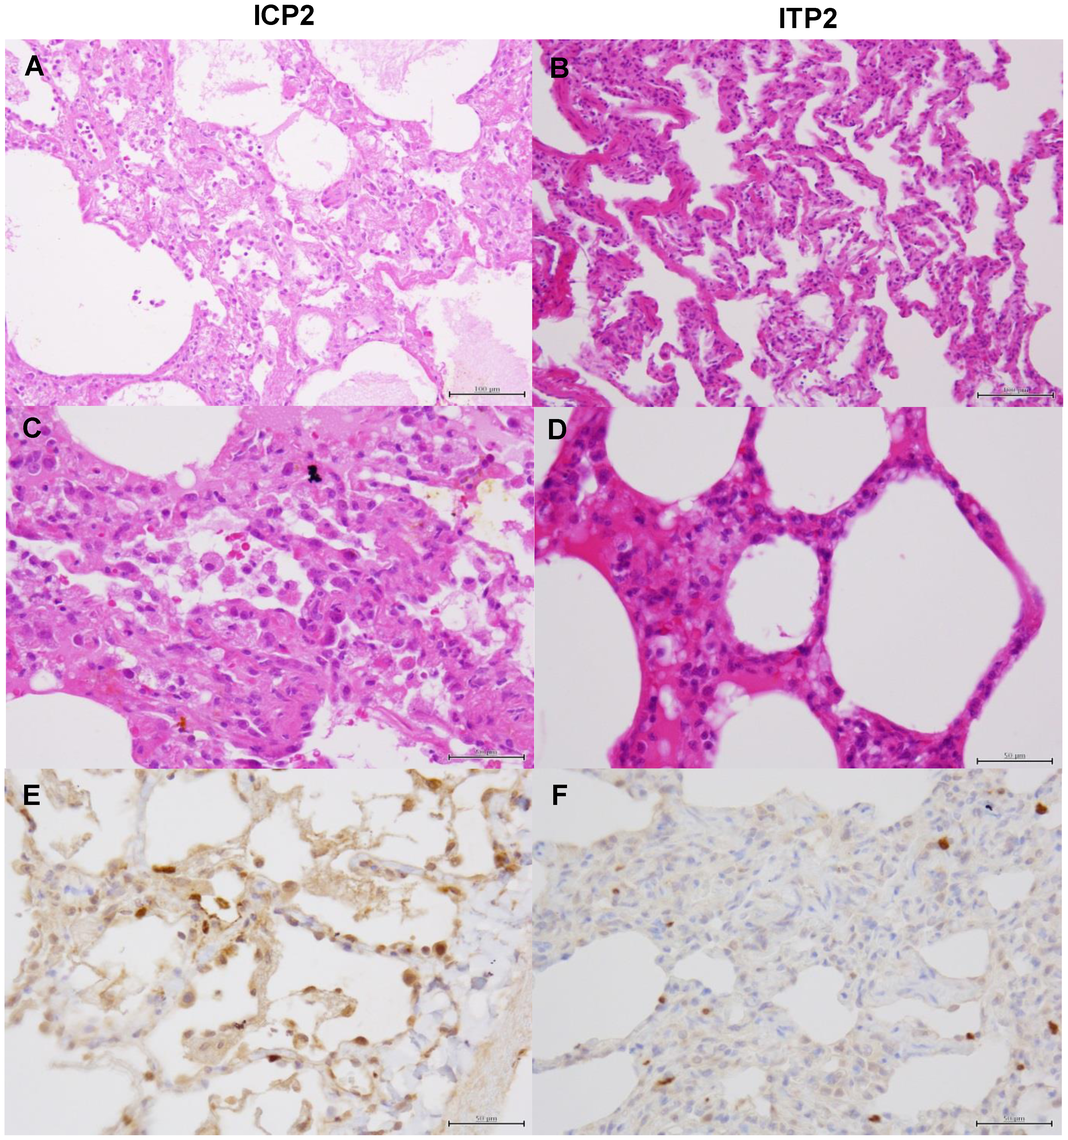 Histological analysis of pneumonia and distribution of viral antigens in immunosuppressed and peramivir-treated macaques infected with VN3040.